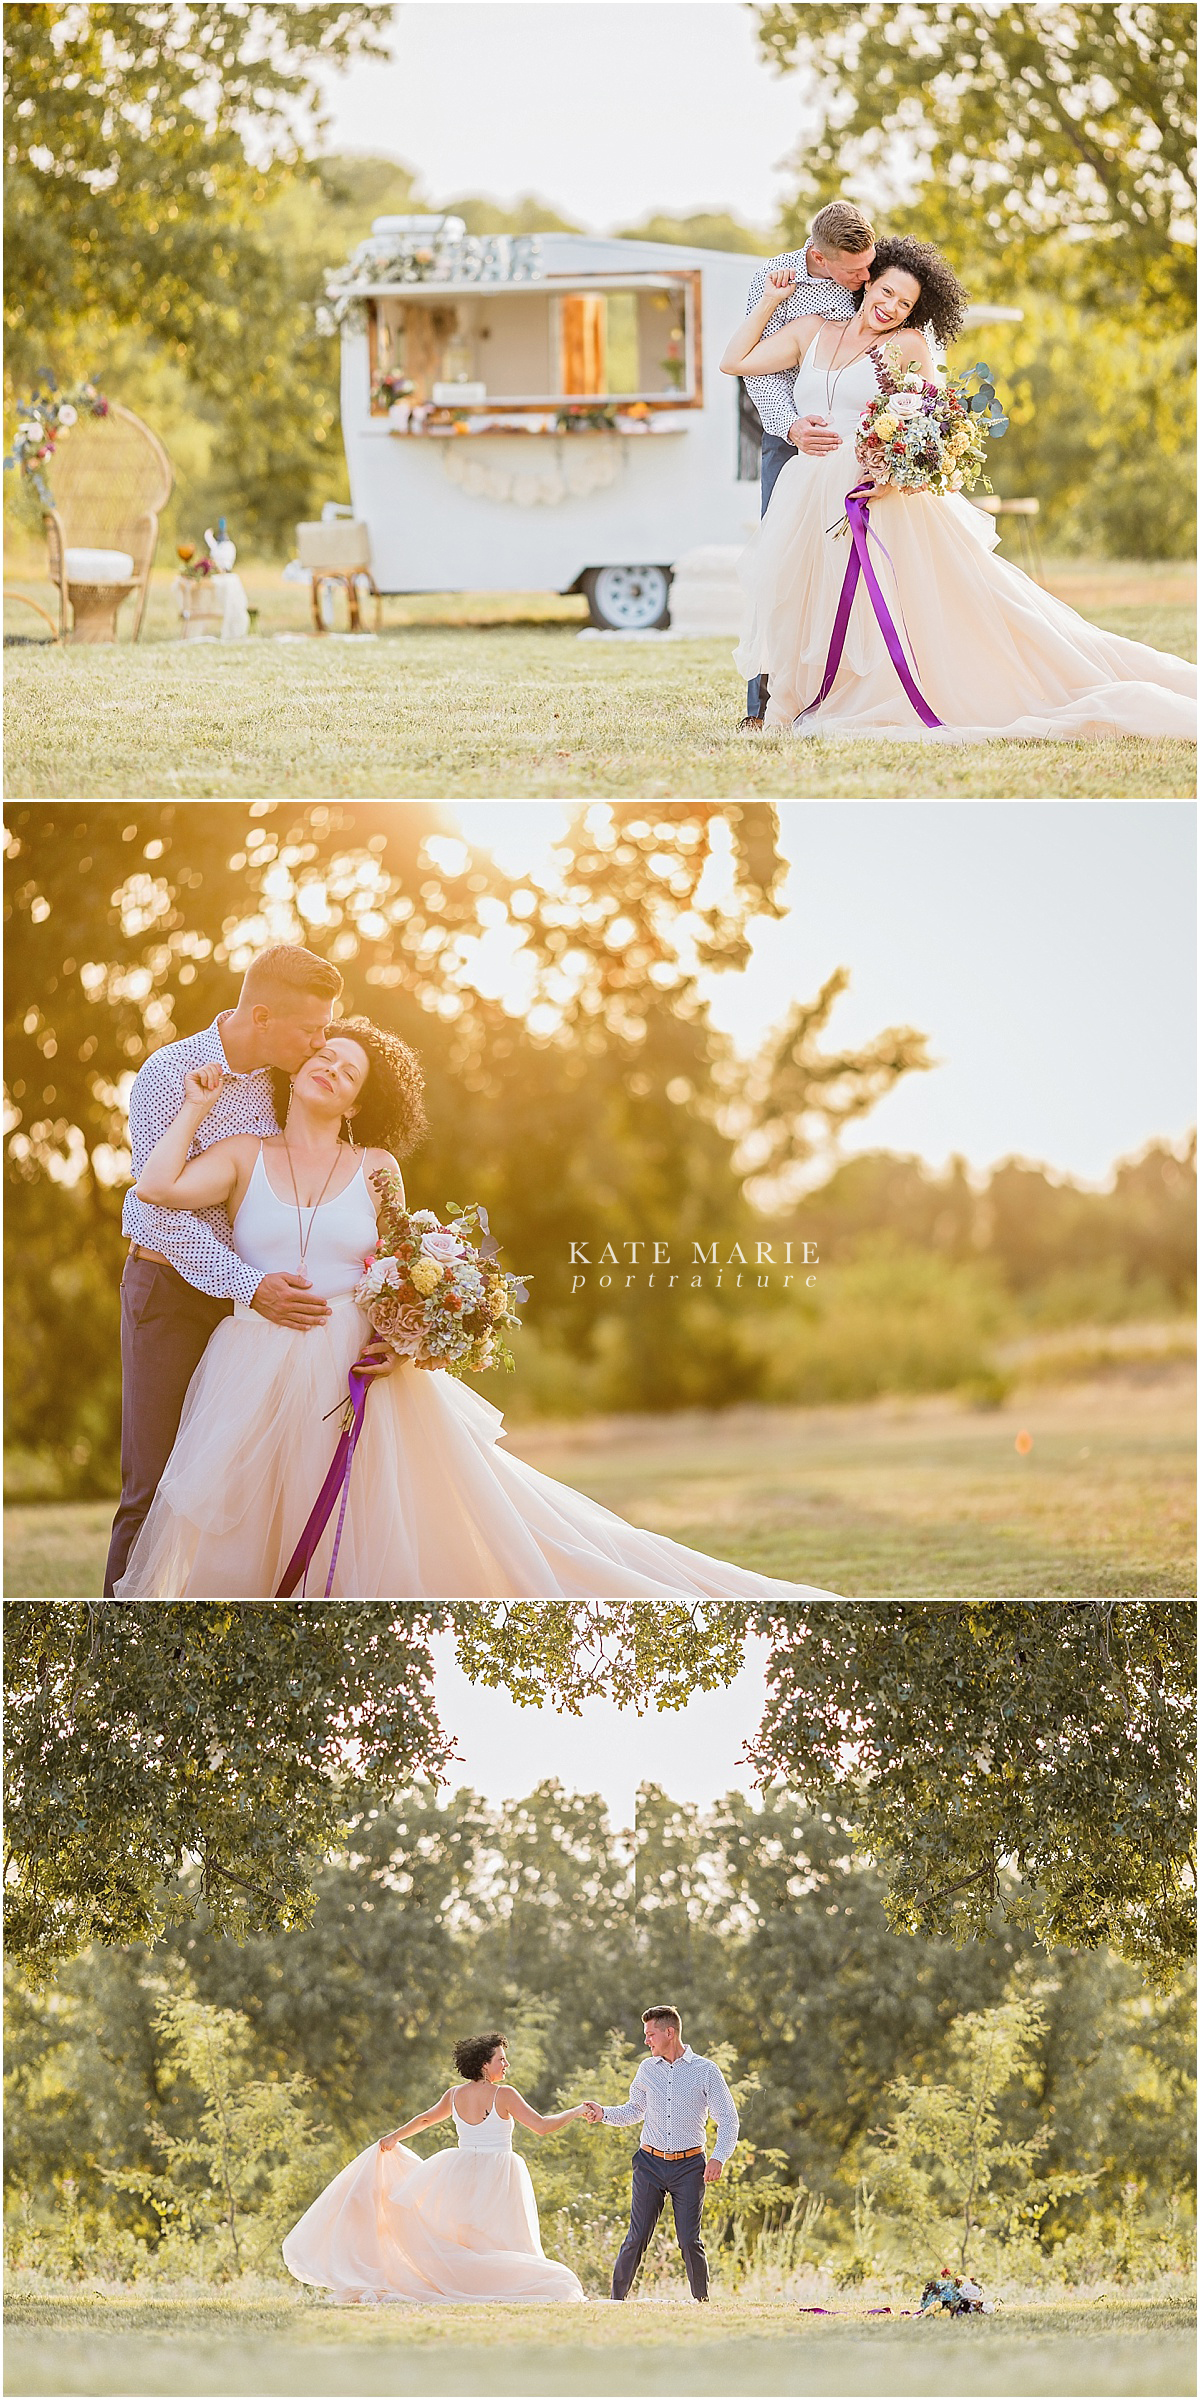 Dallas_Wedding_Photographer_Flower_Mound_Portrait_Photographer_Kate_Marie_Portraiture_3.jpg